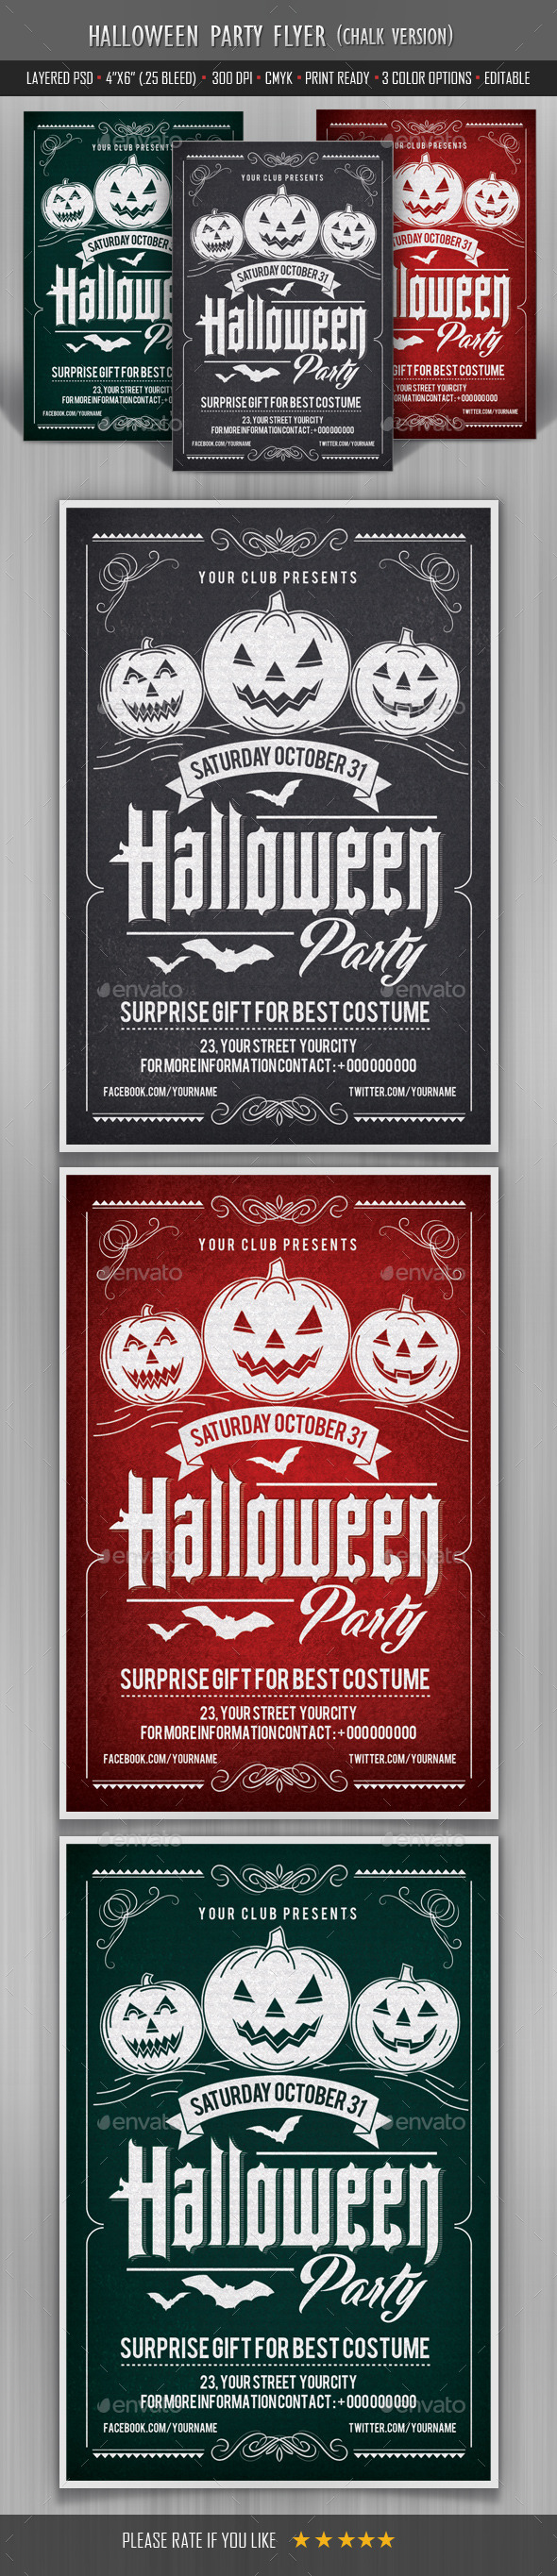 Halloween Party Flyer Template - Print Templates